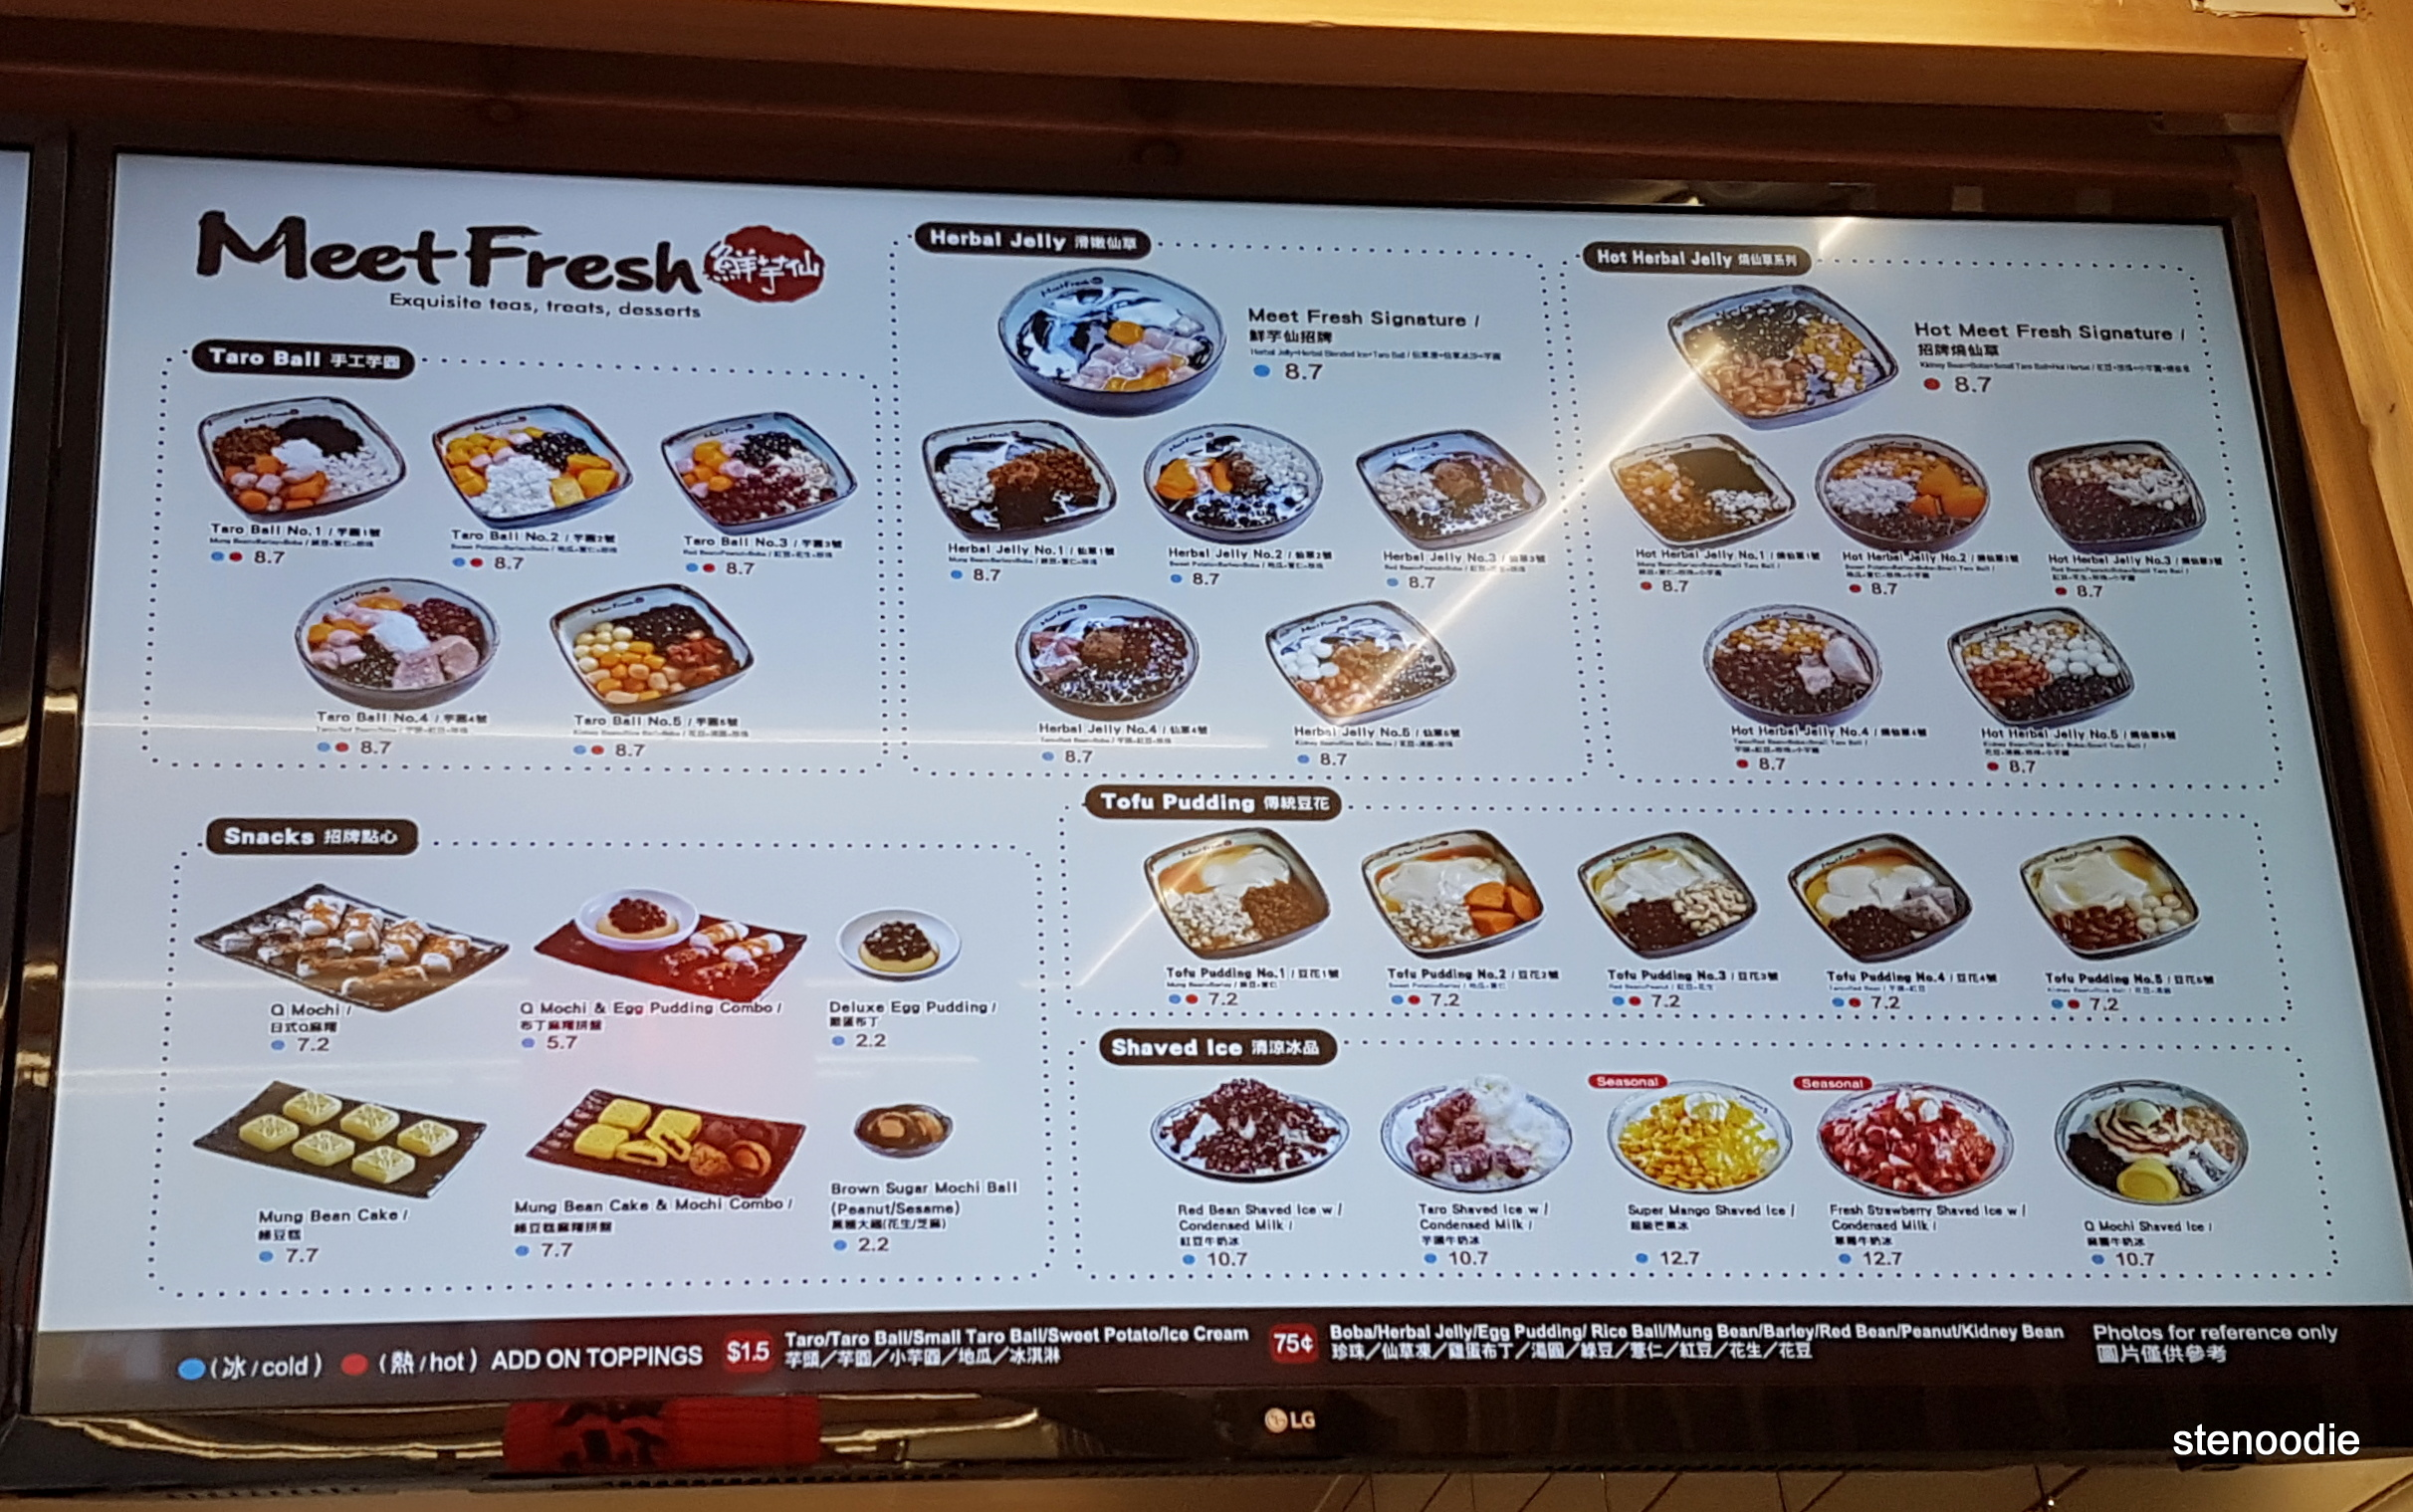 Meet Fresh menu and prices